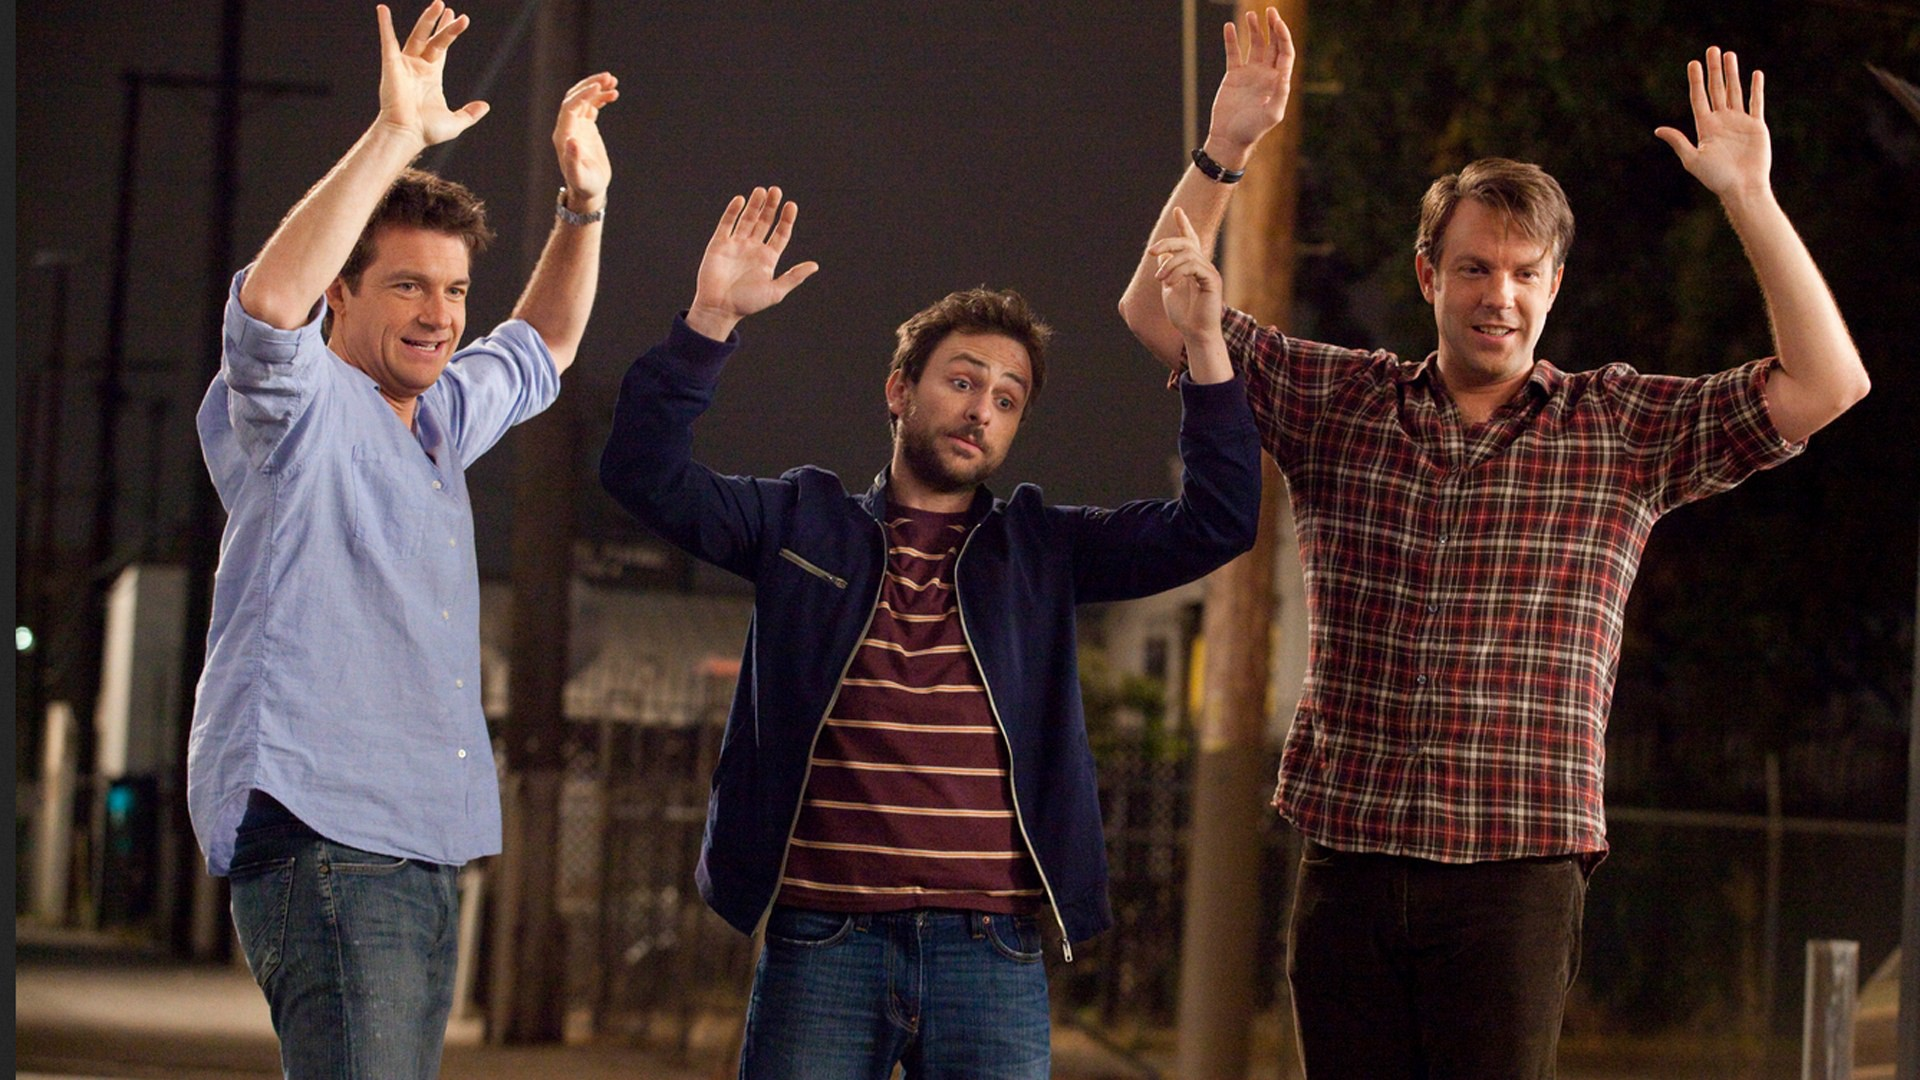 Top 5 Comedy Movies Like ' The Hangover Series '